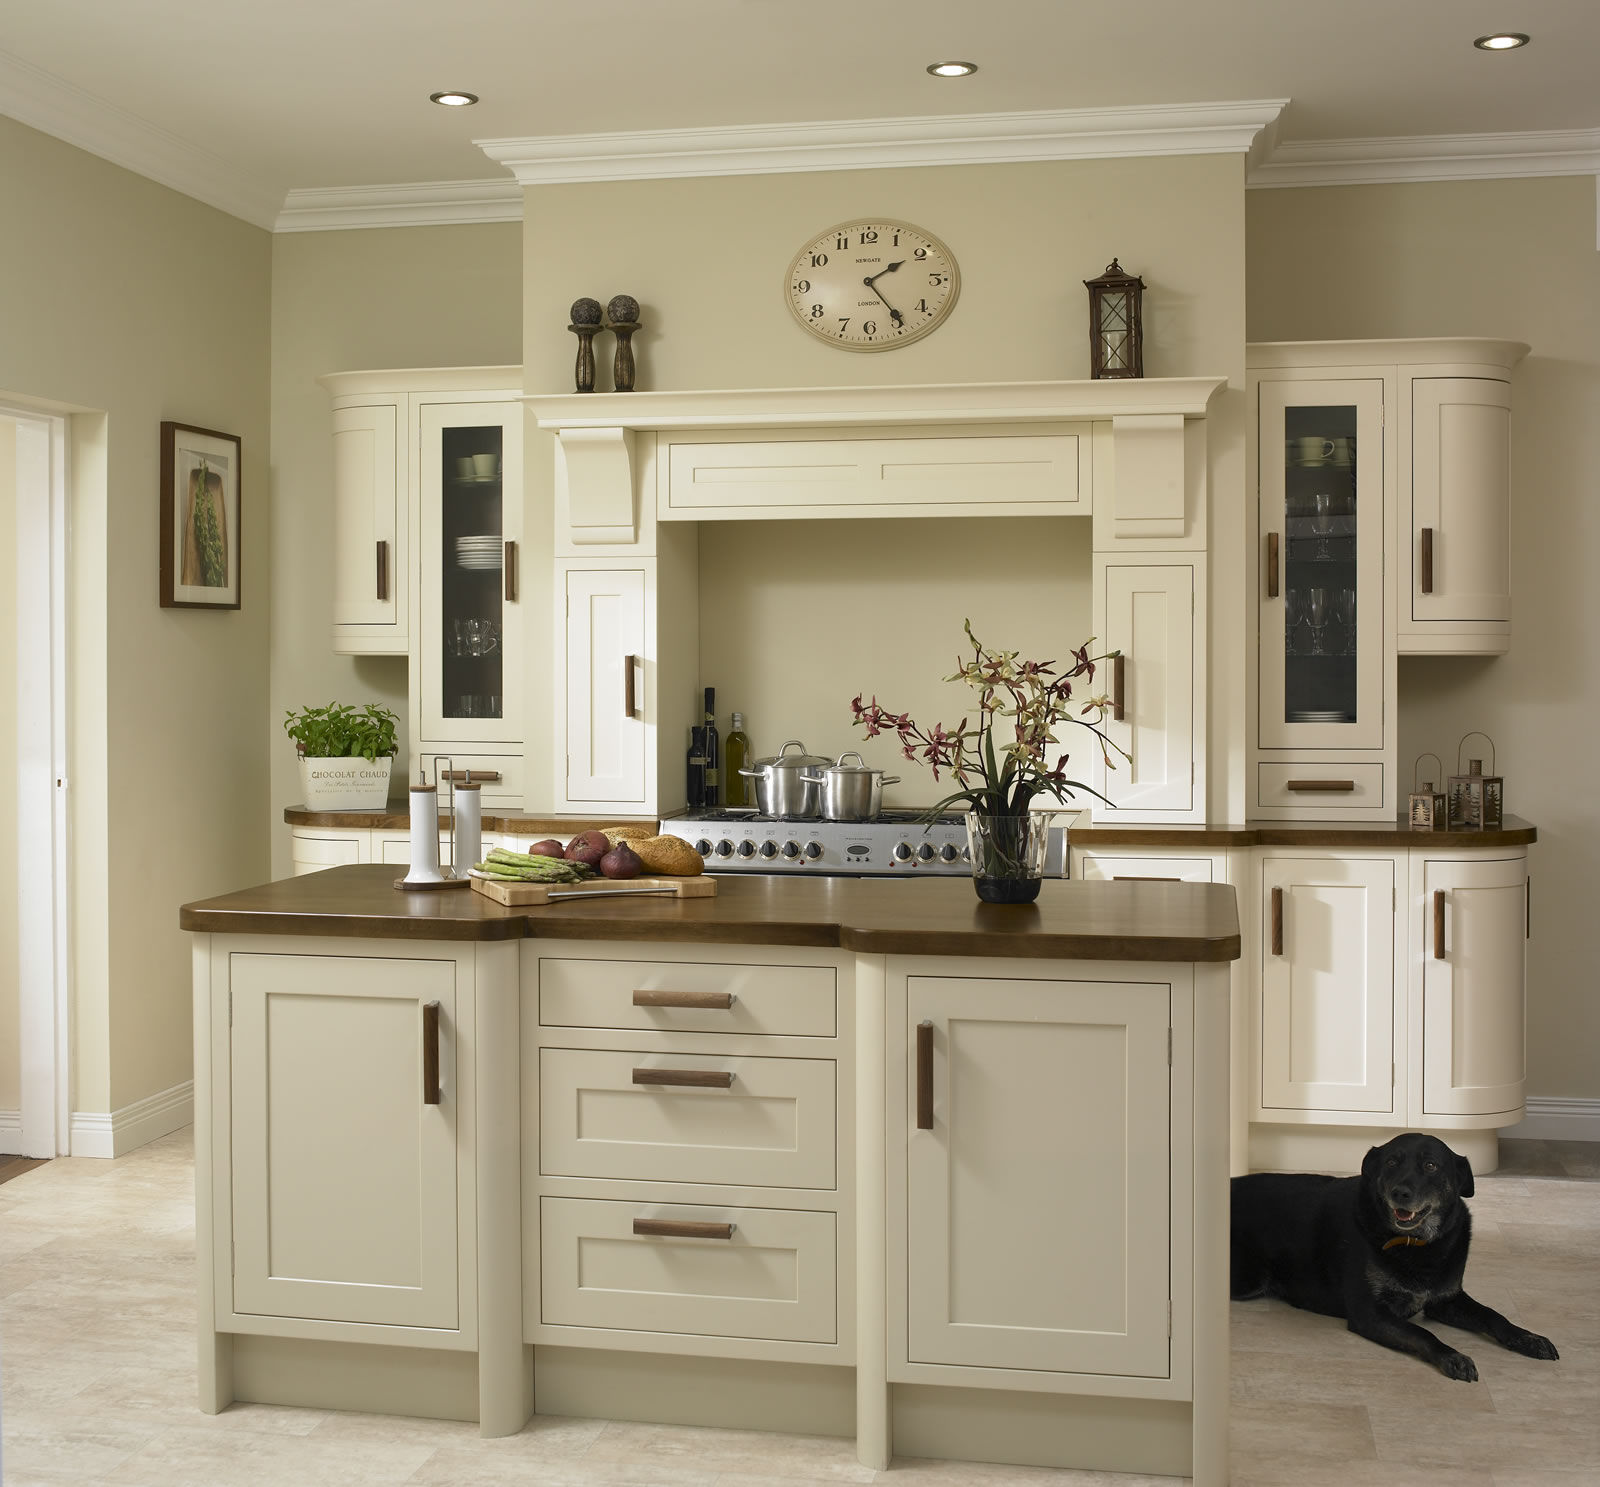 Kitchens Design Ideas   Galworx Custom Fitted Kitchens Furniture And  Storage Solutions